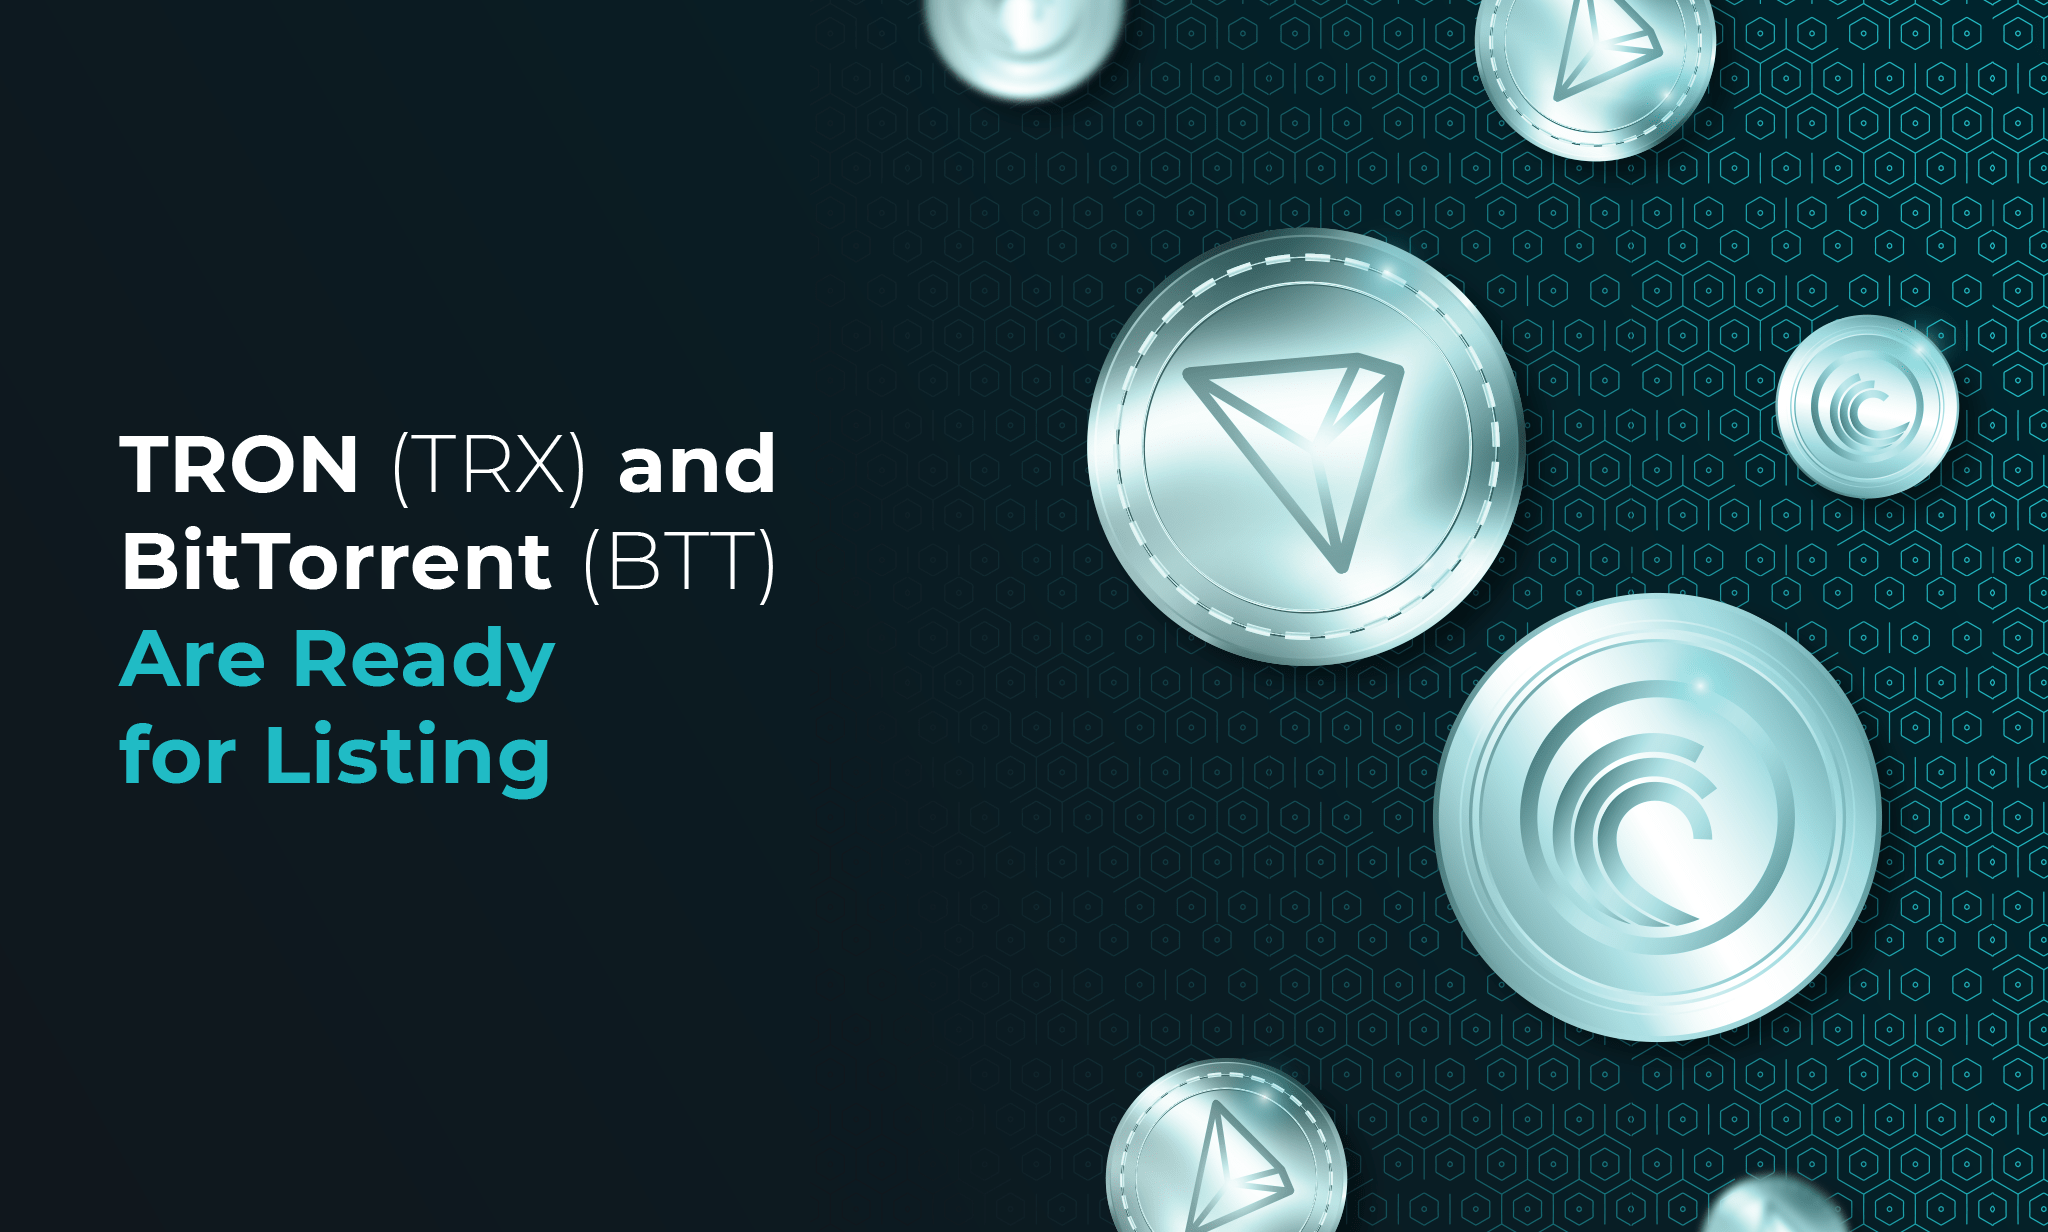 Xrp Kaufen Schweiz Cex Io To List Tron Trx And Bittorrent Btt Ripple